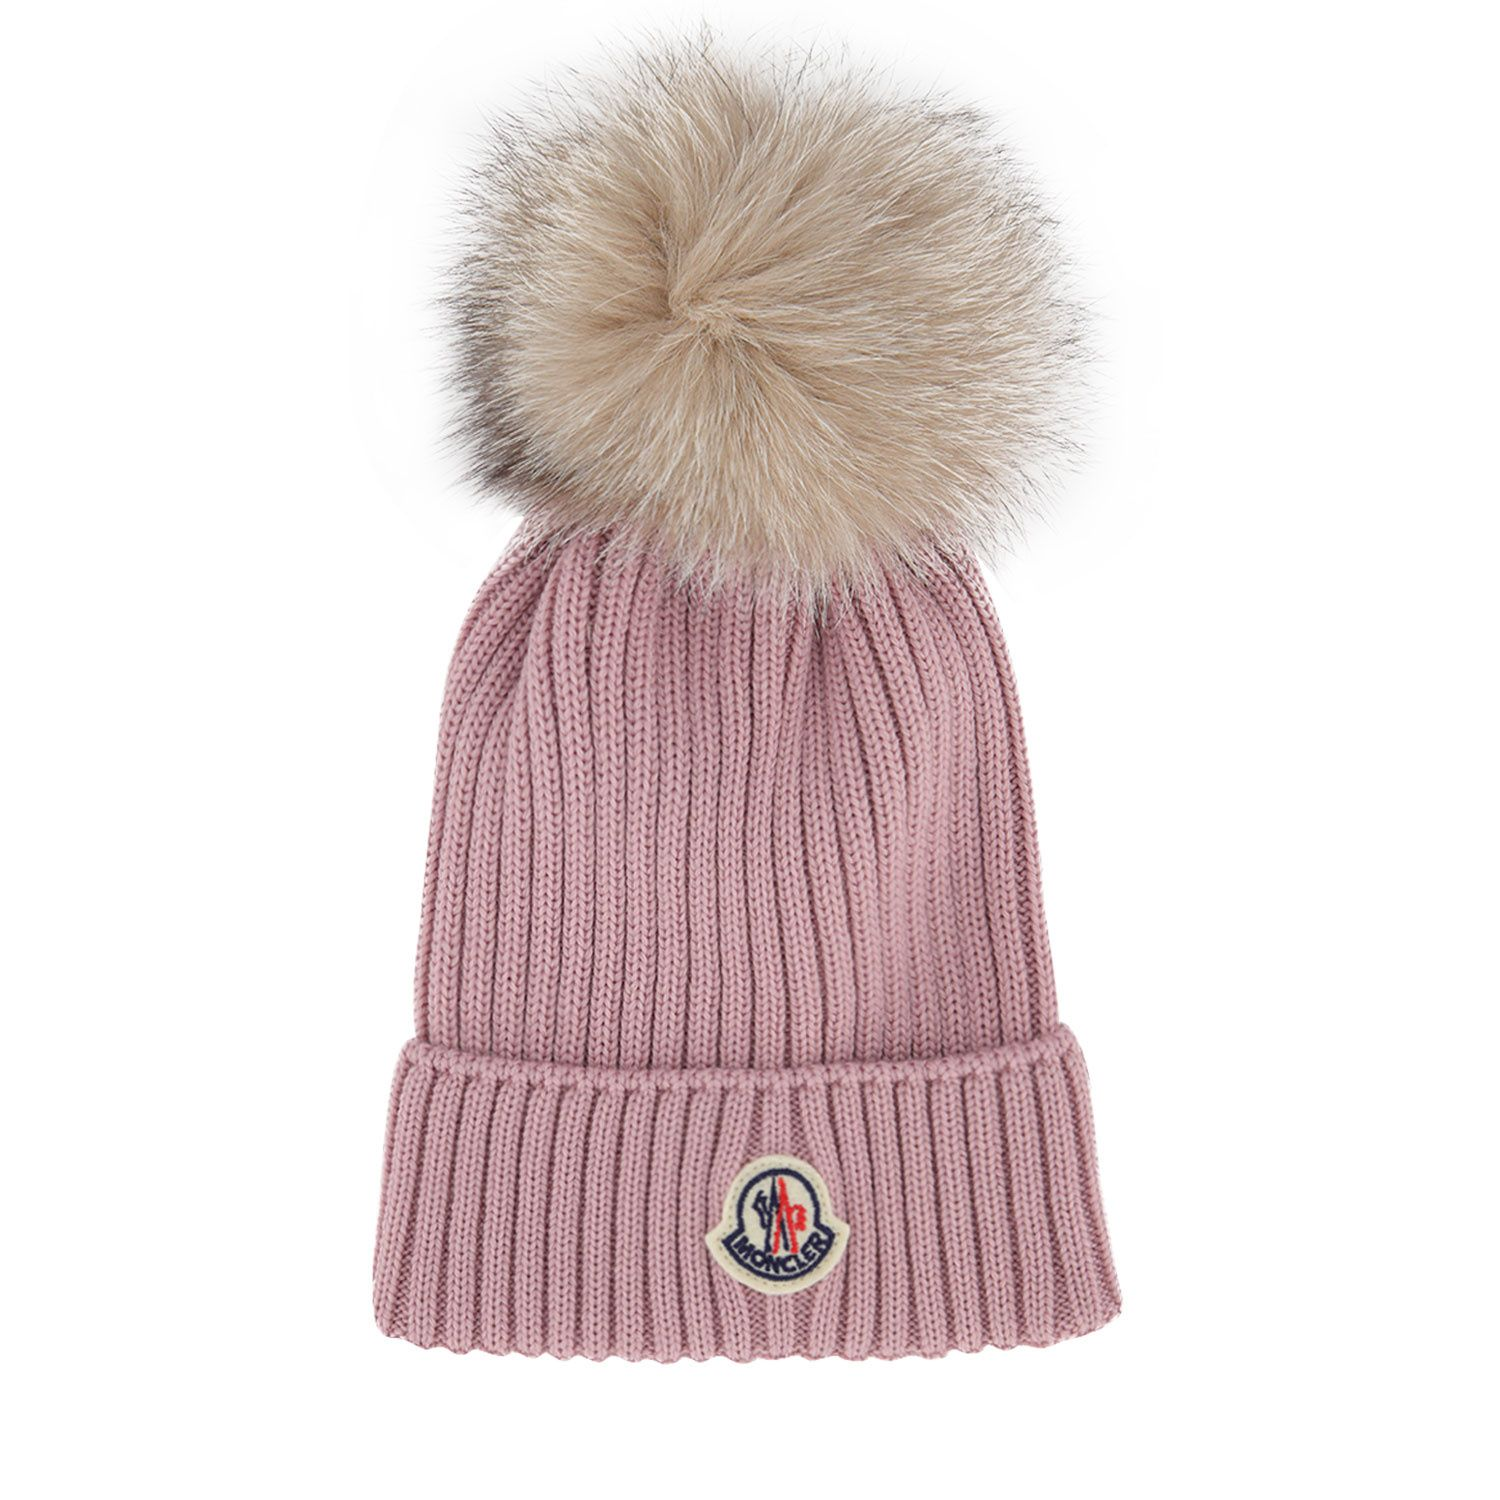 Picture of Moncler 3B71110 kids hat light pink